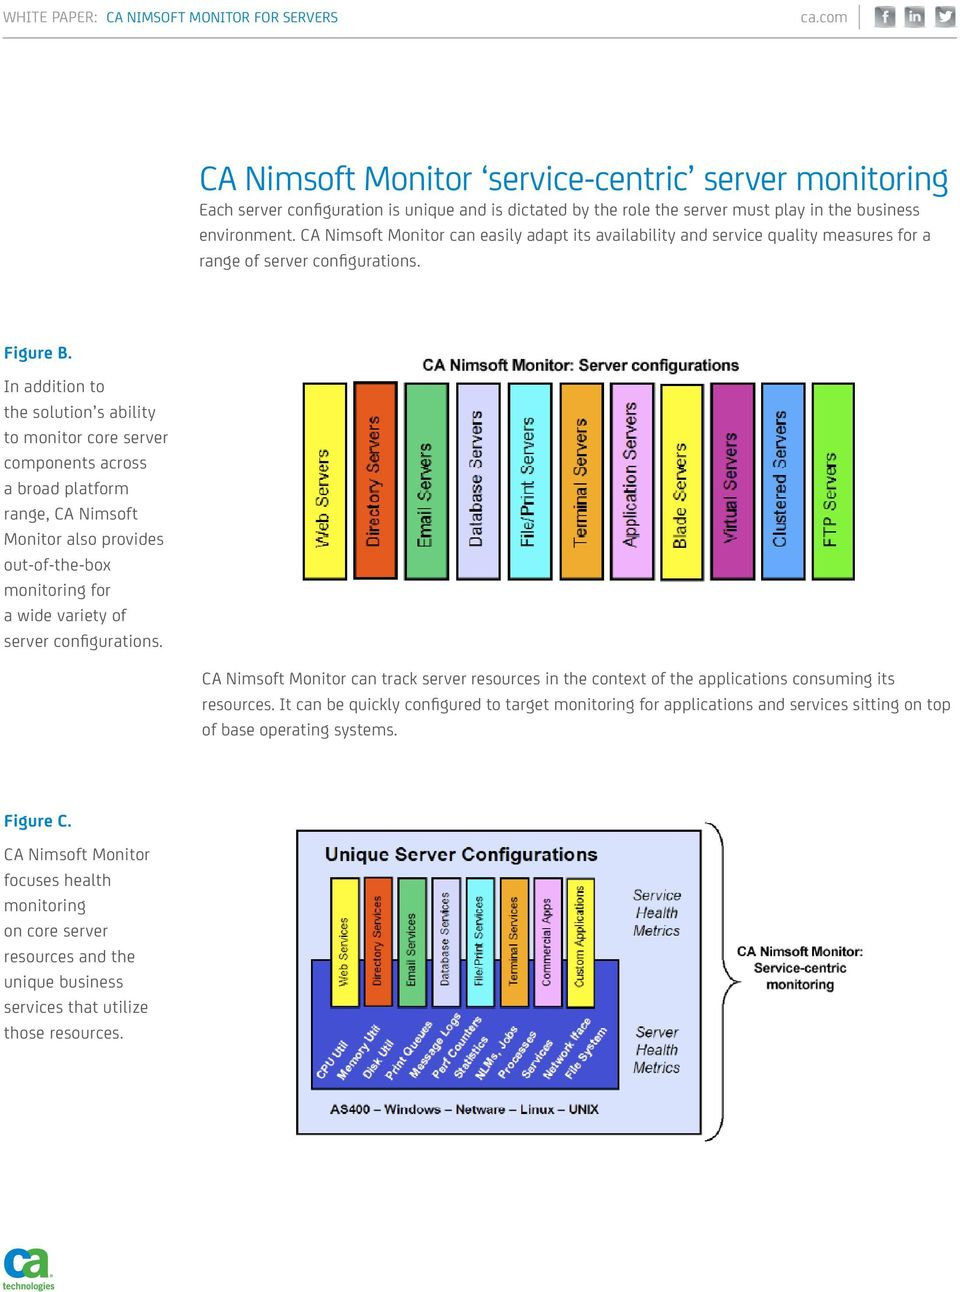 In addition to the solution s ability to monitor core server components across a broad platform range, CA Nimsoft Monitor also provides out-of-the-box monitoring for a wide variety of server